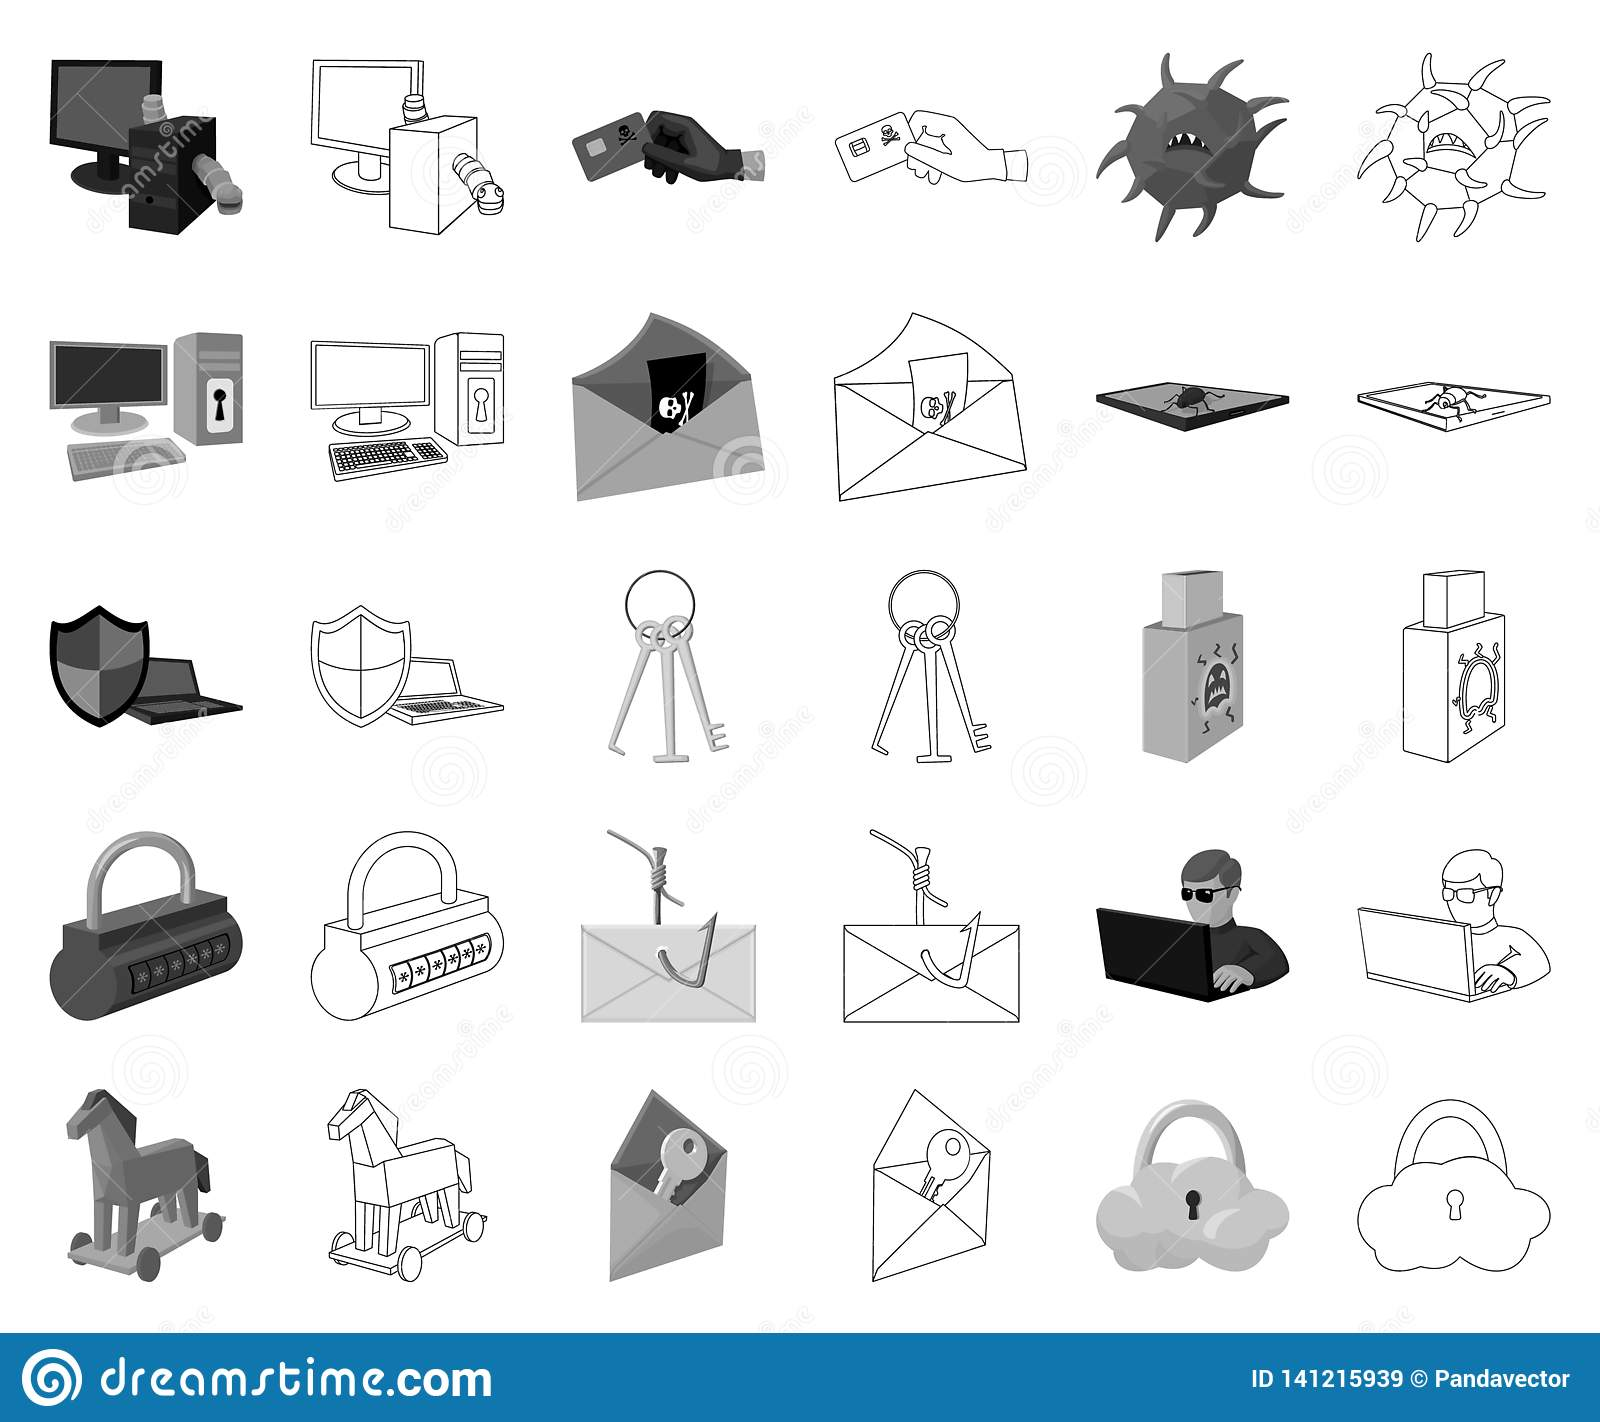 Hacker and hacking monochrome,outline icons in set collection for design. Hacker and equipment vector symbol stock web